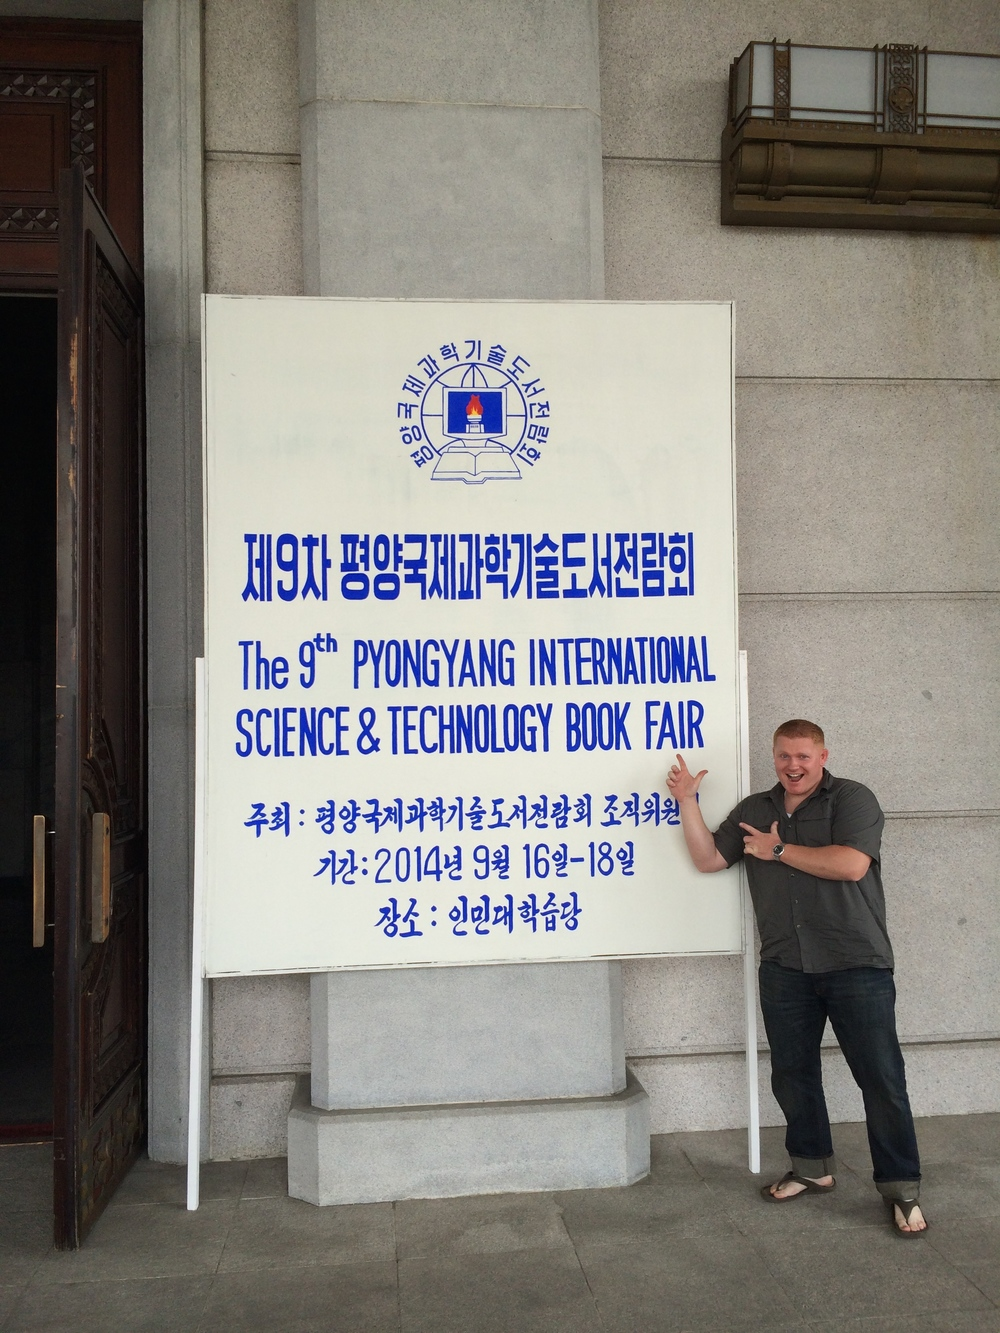 With our colleague Ryan in Pyongyang